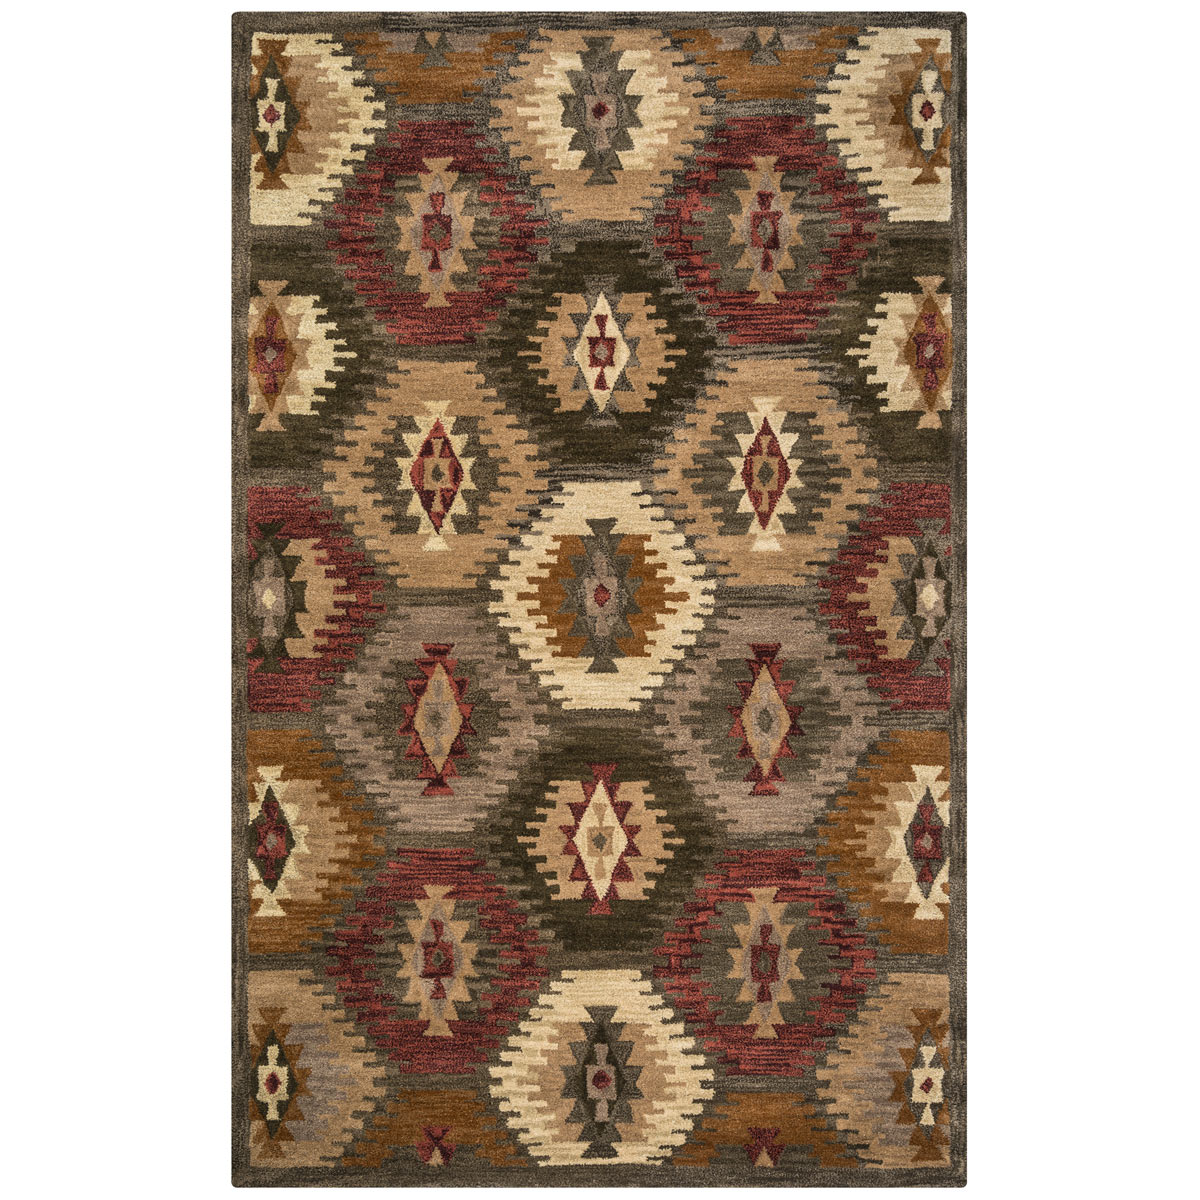 Southwest Honeycomb Rug - 9 x 12